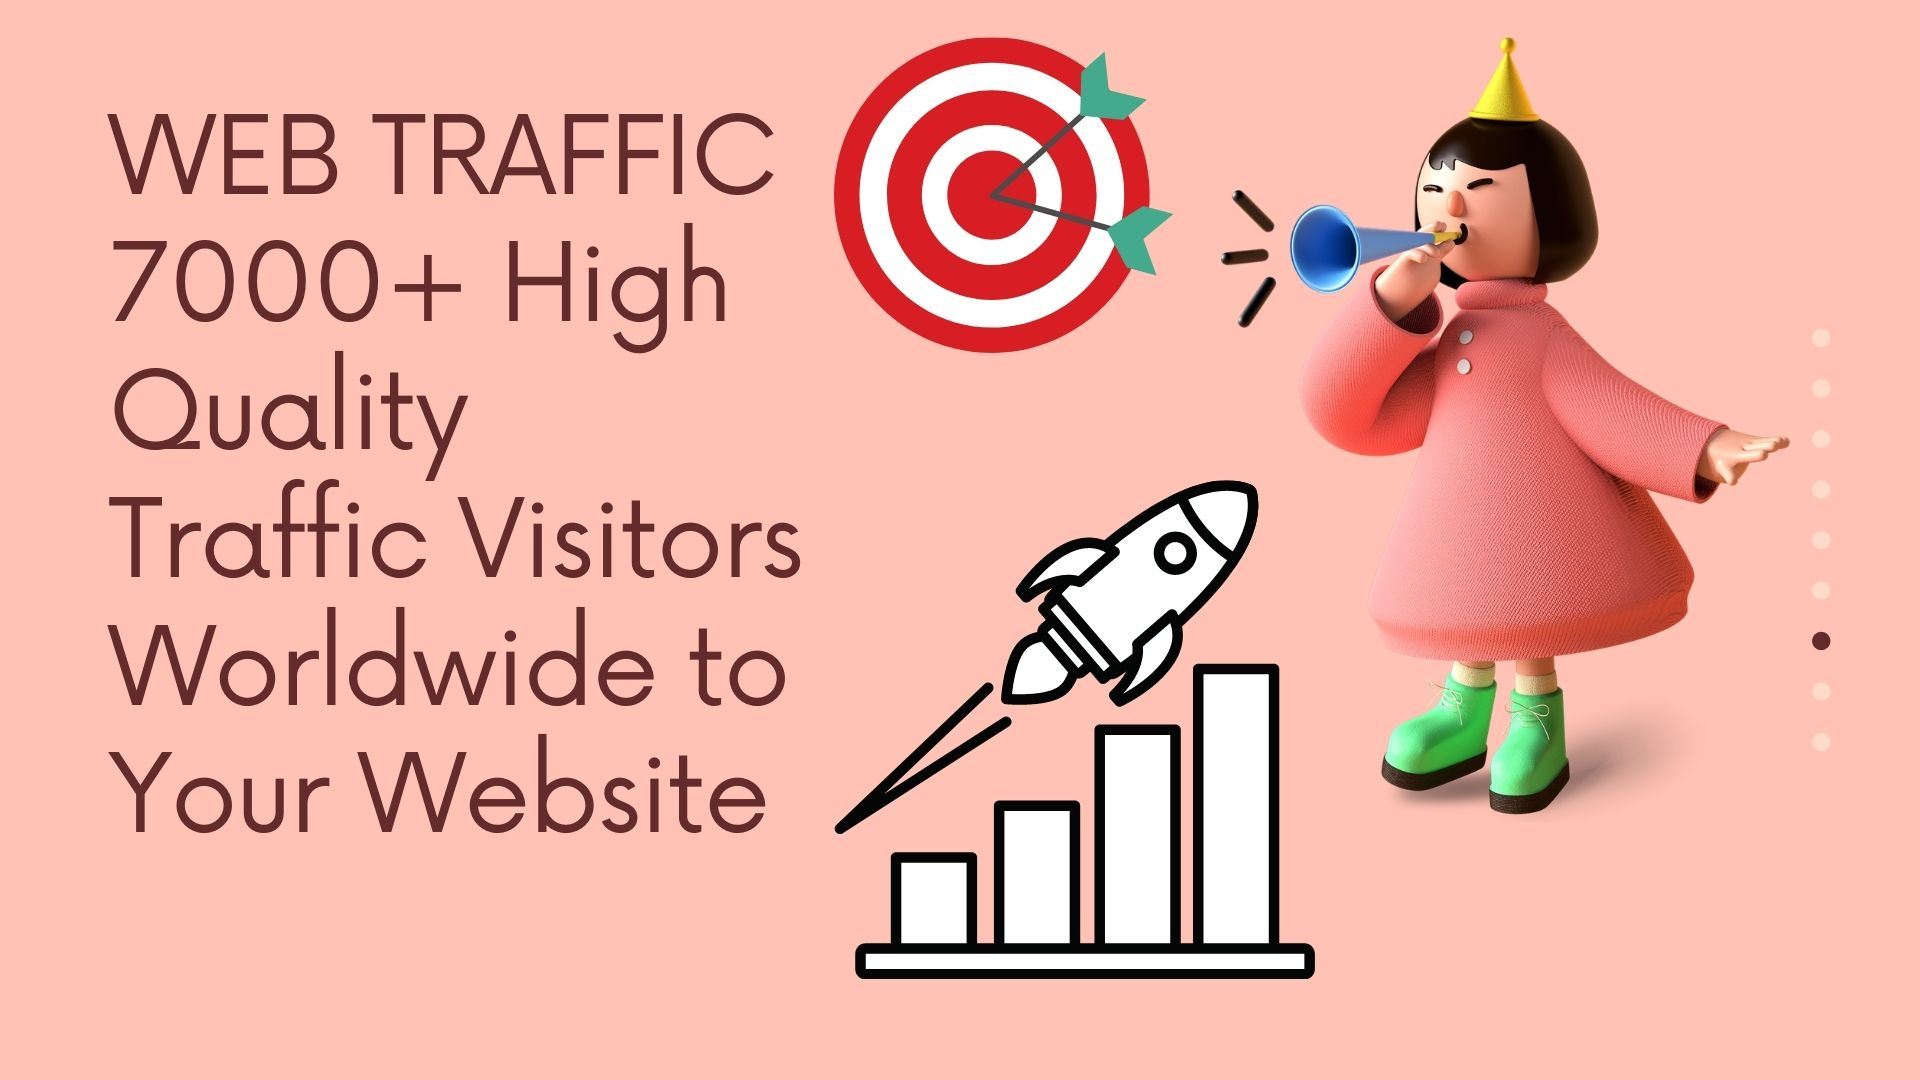 WEB TRAFFIC 7000+ High Quality Traffic Visitors Worldwide to Your Website